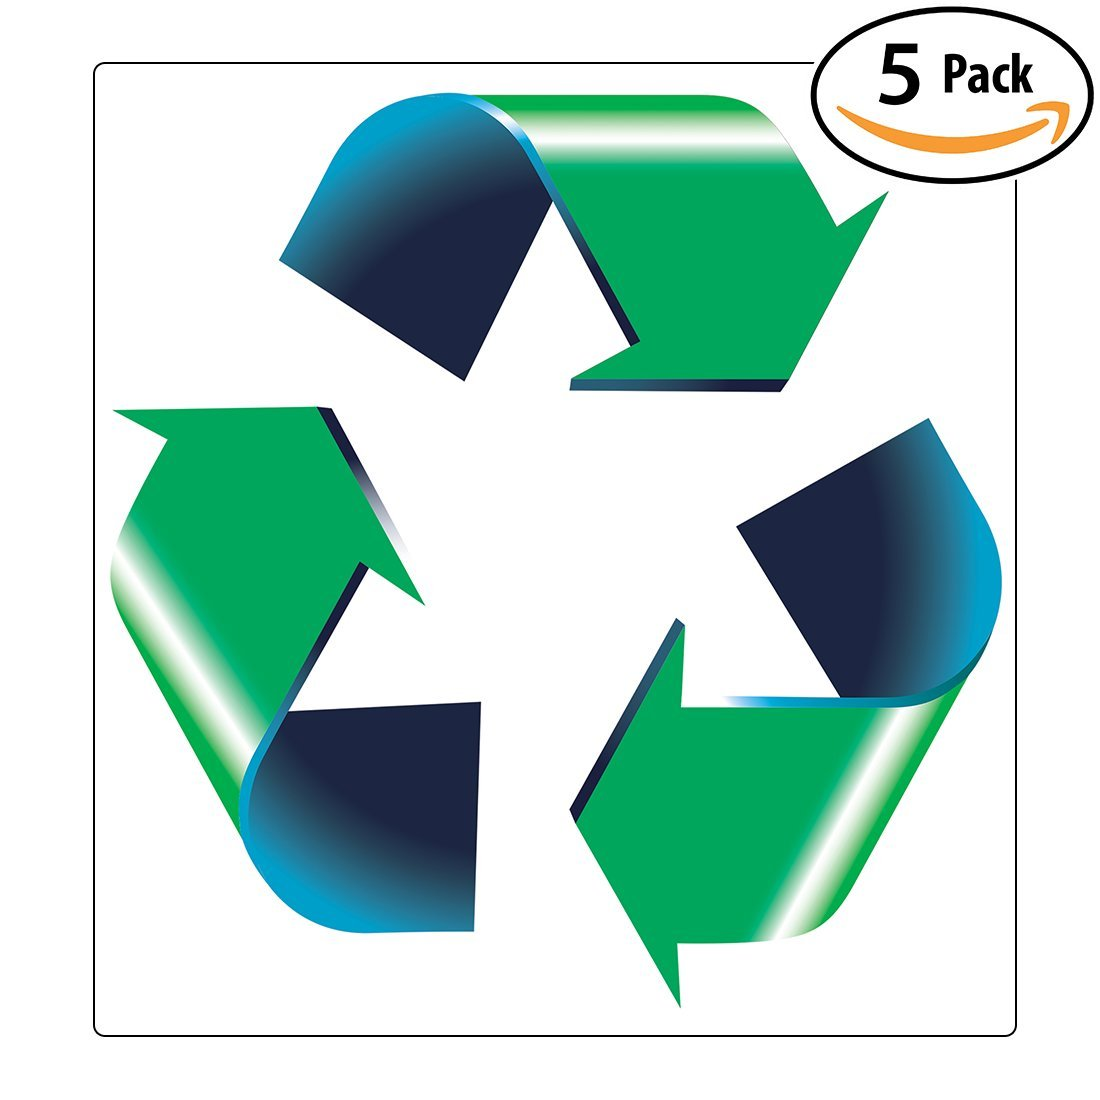 Chic retail genius oversized 8in recycle symbol sticker 5 pack for chic retail genius oversized 8in recycle symbol sticker 5 pack for green white buycottarizona Choice Image